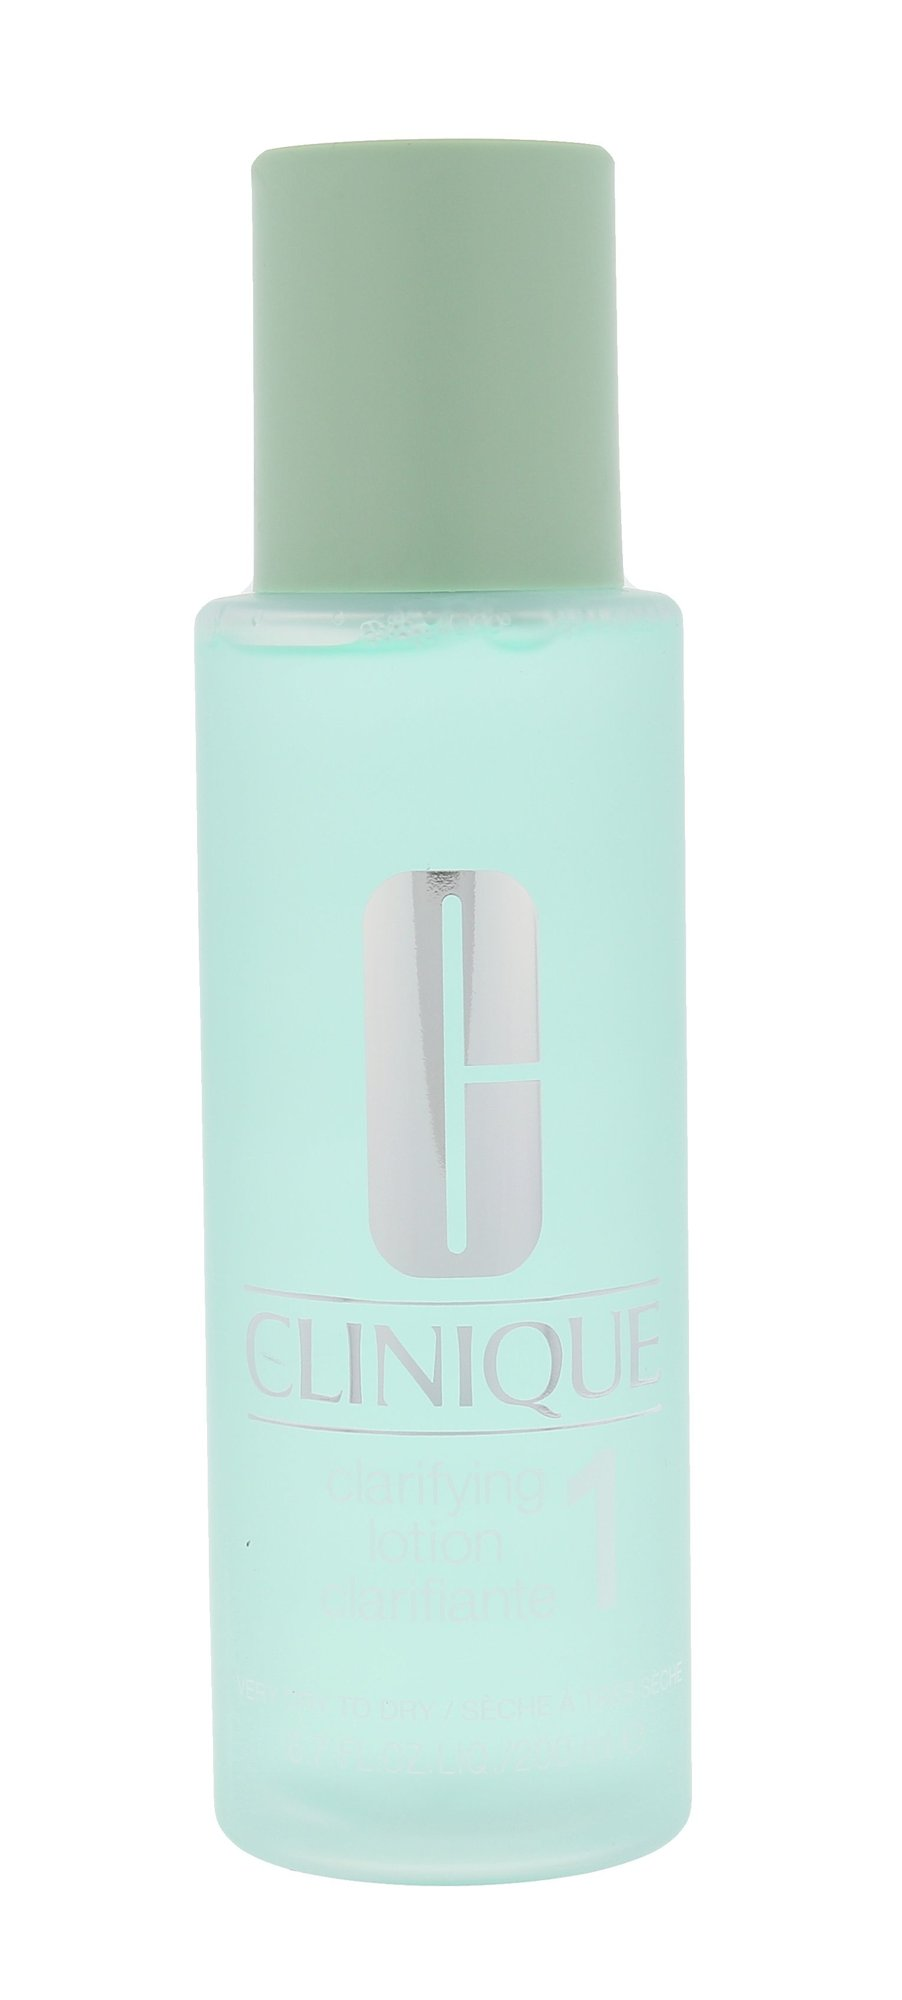 Clinique 3-Step Skin Care 1 Cosmetic 200ml